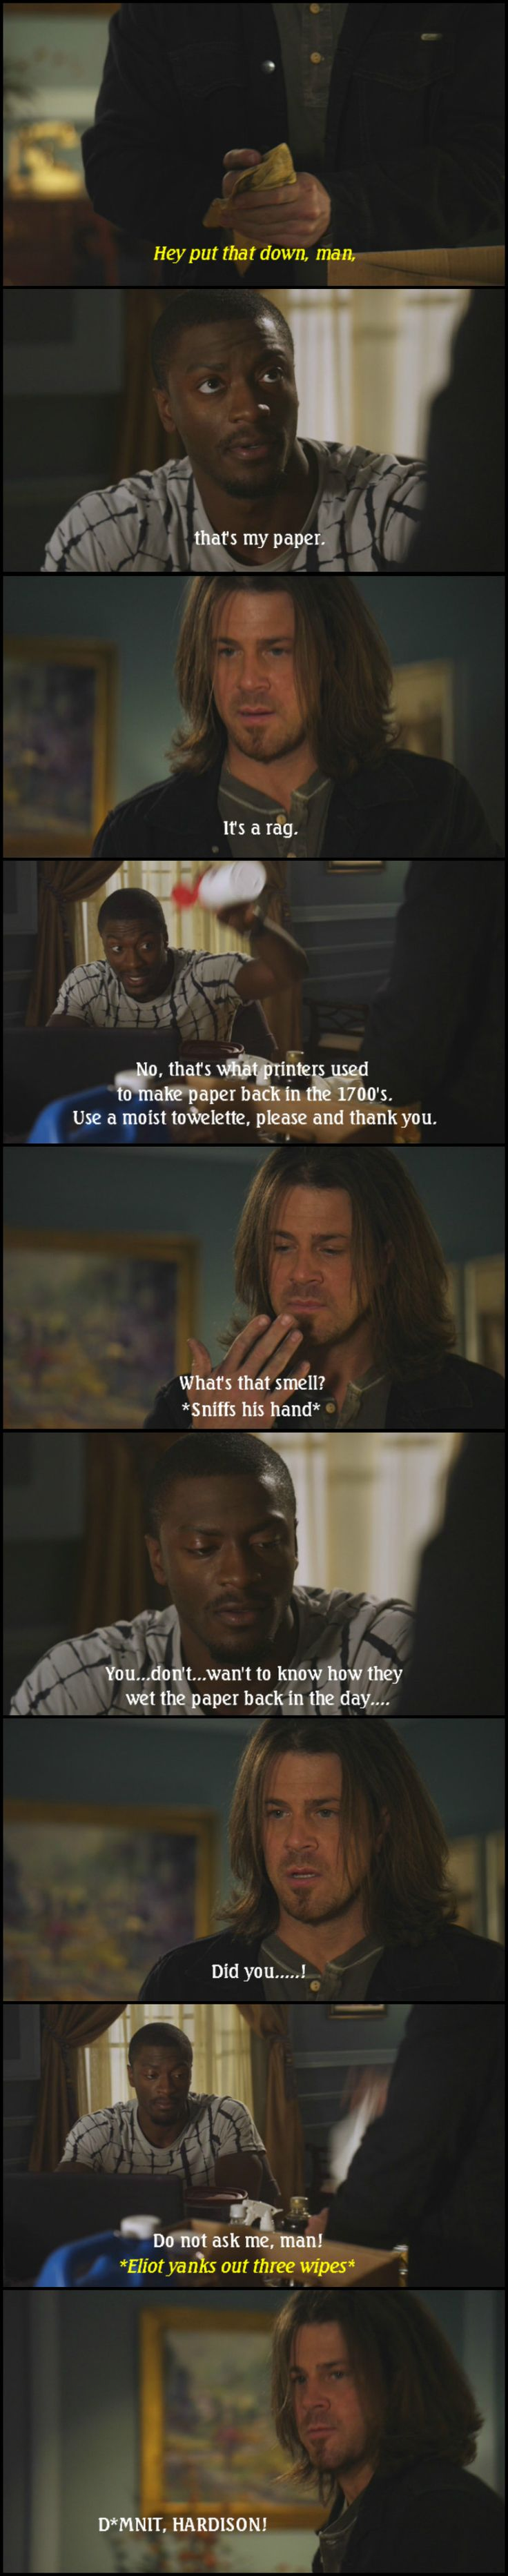 Typical interaction between Hardison and Elliott from TNT's Leverage.  Love both characters!  :-)